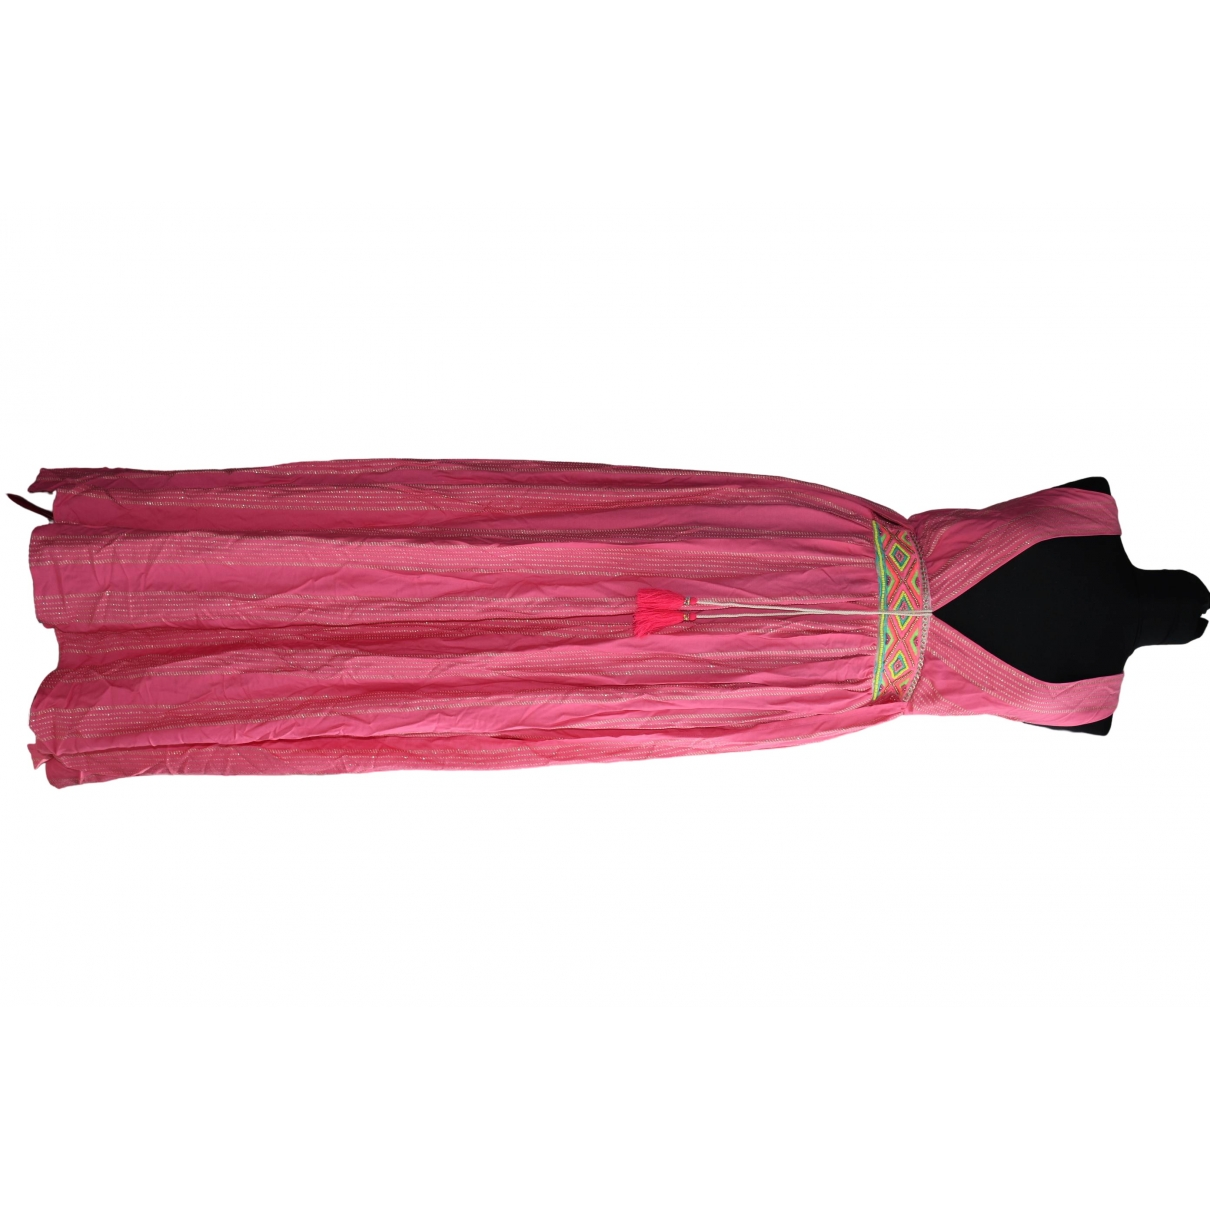 Non Signe / Unsigned \N Kleid in  Rosa Baumwolle